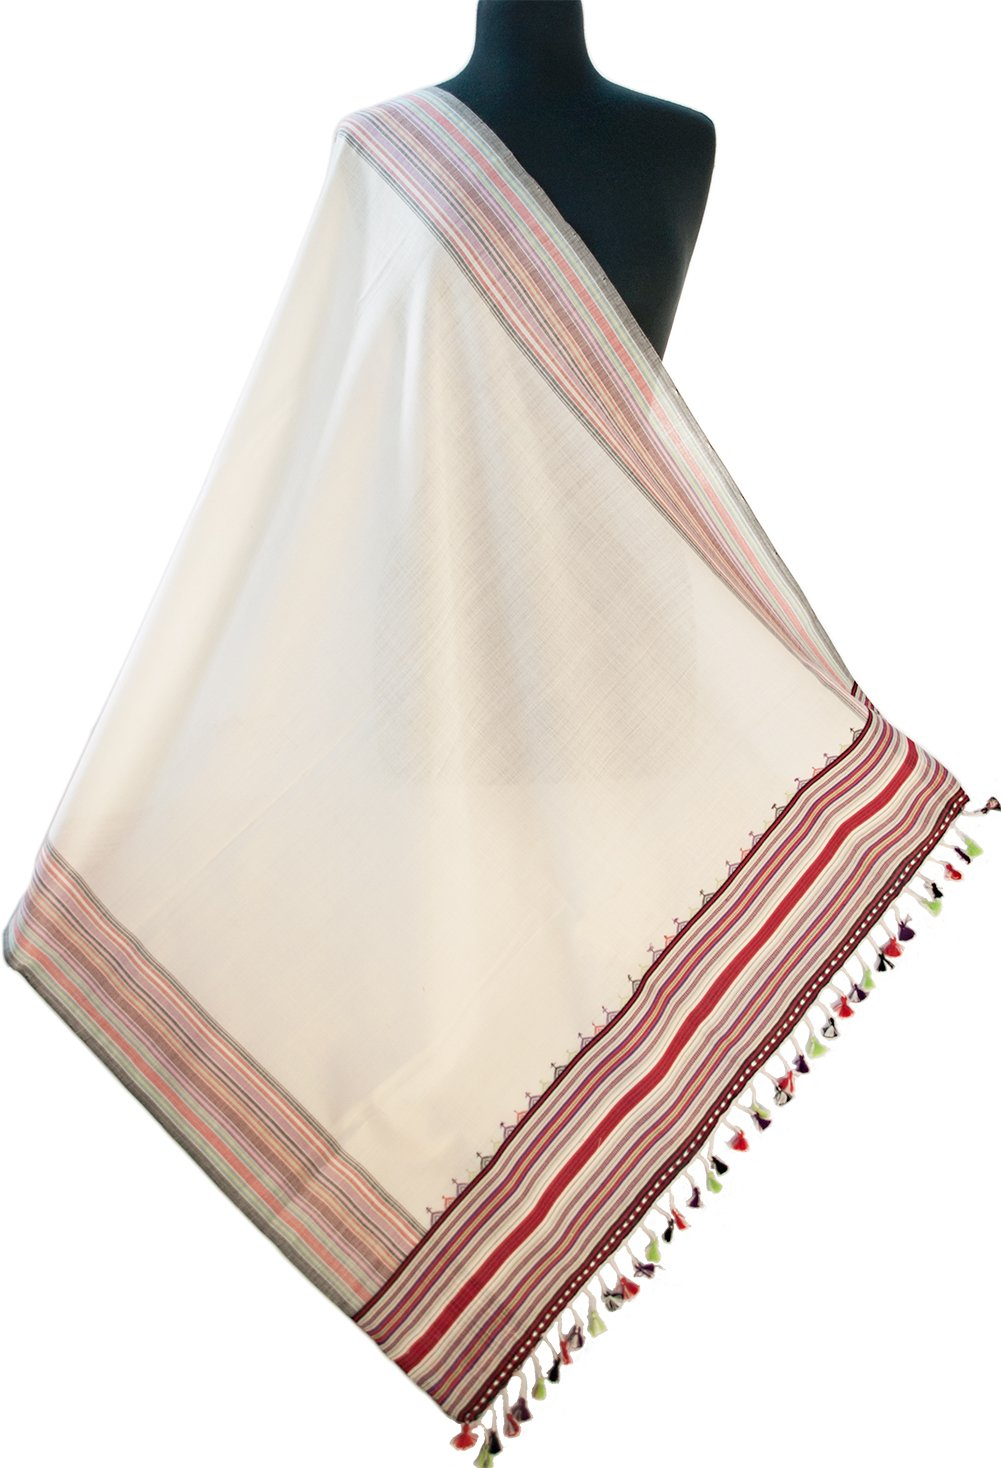 "Large Hand Woven Cotton Shawl Cream Ivory White With Red 82"" x 33"" Colorful Scarf"